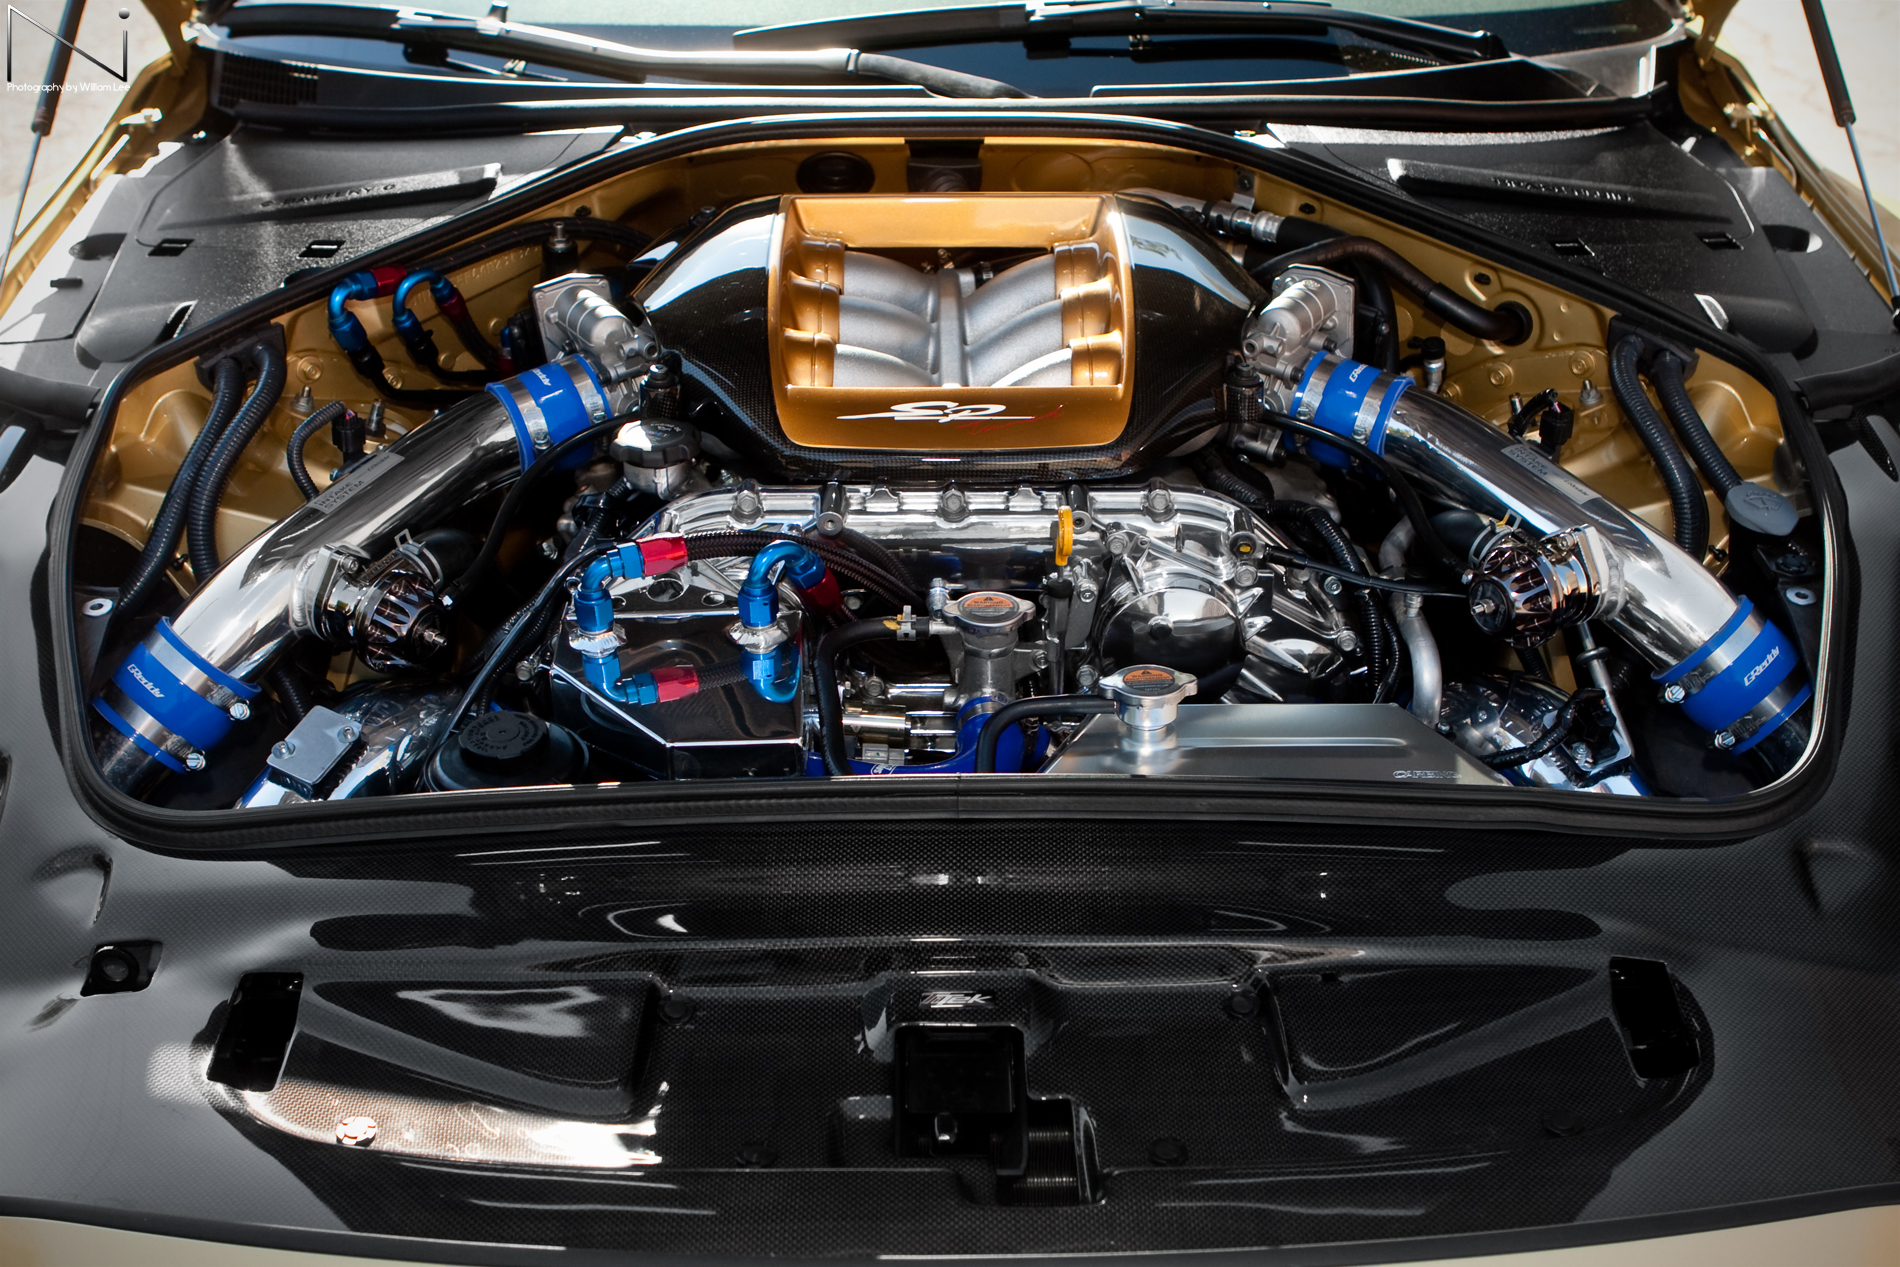 TommyKaira GT-R R35 Engine Bay | Flickr - Photo Sharing!